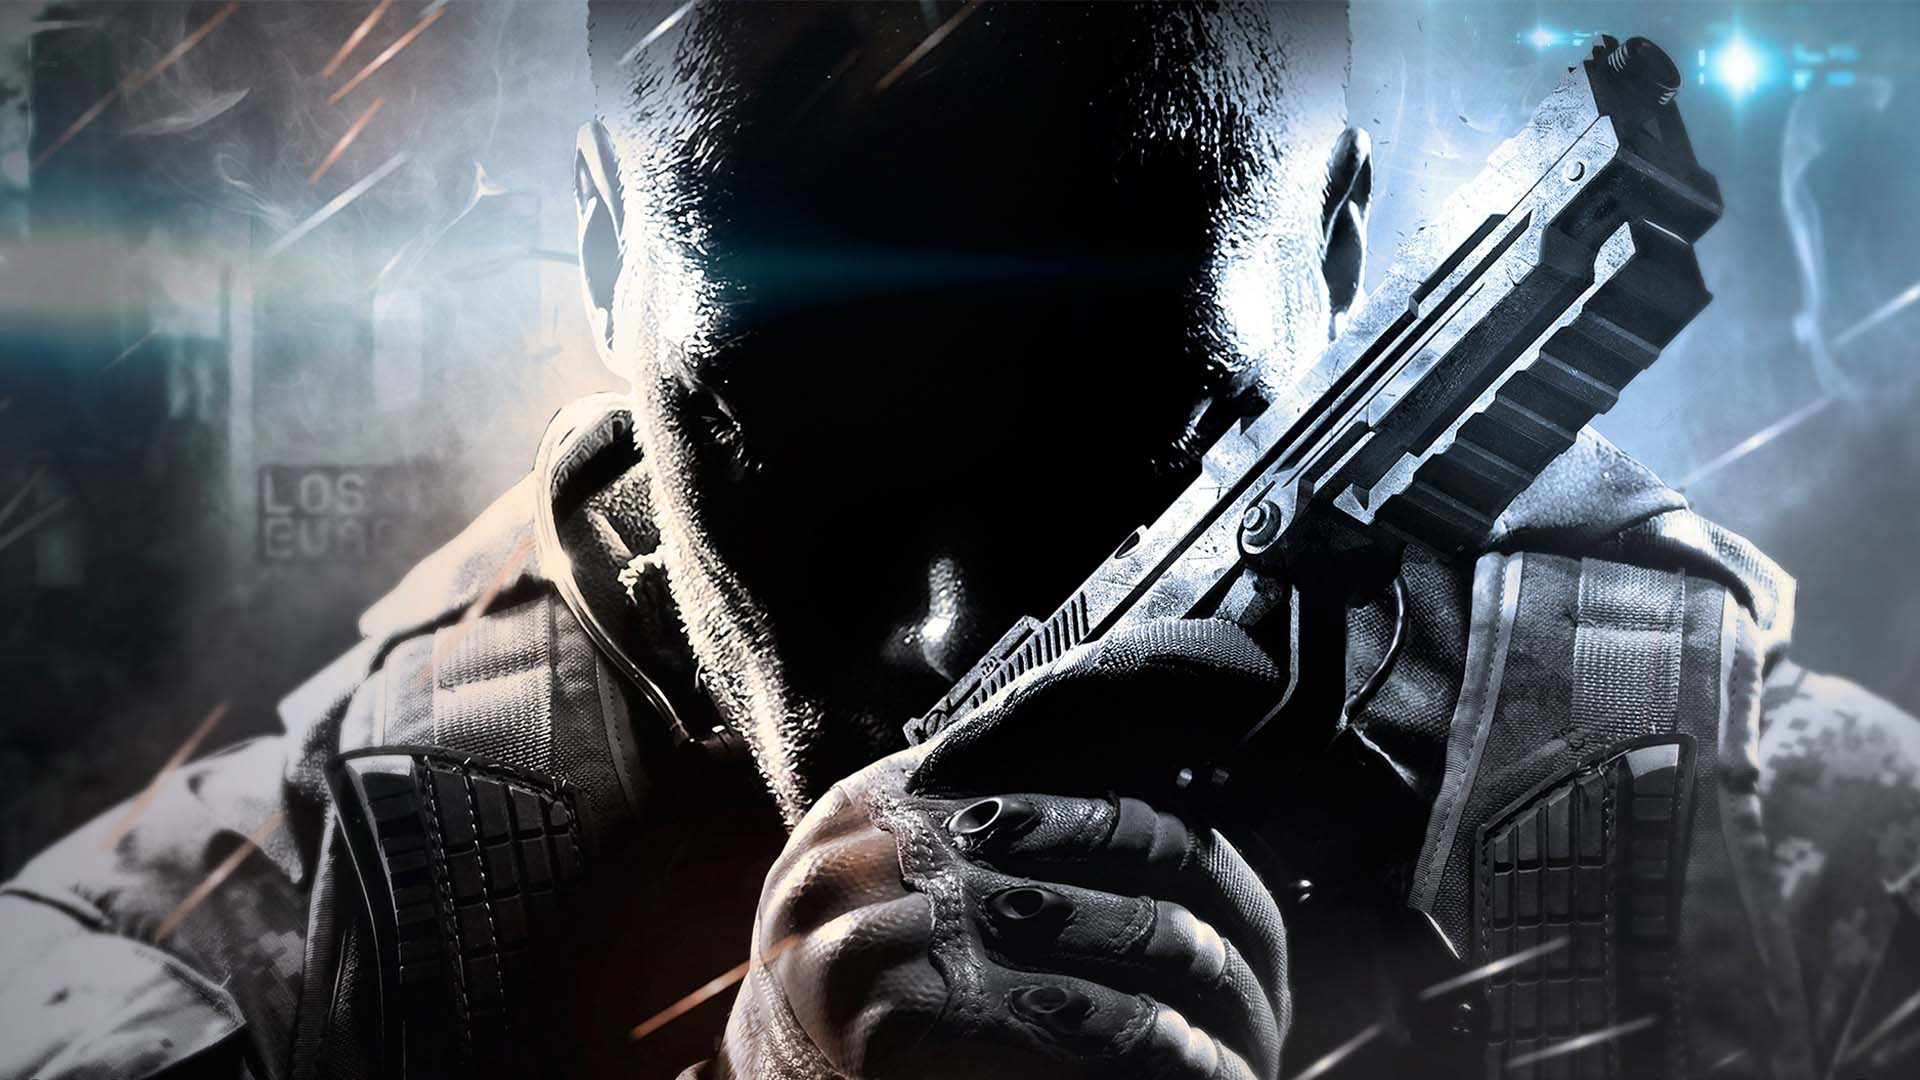 cool call of duty wallpaper ghost